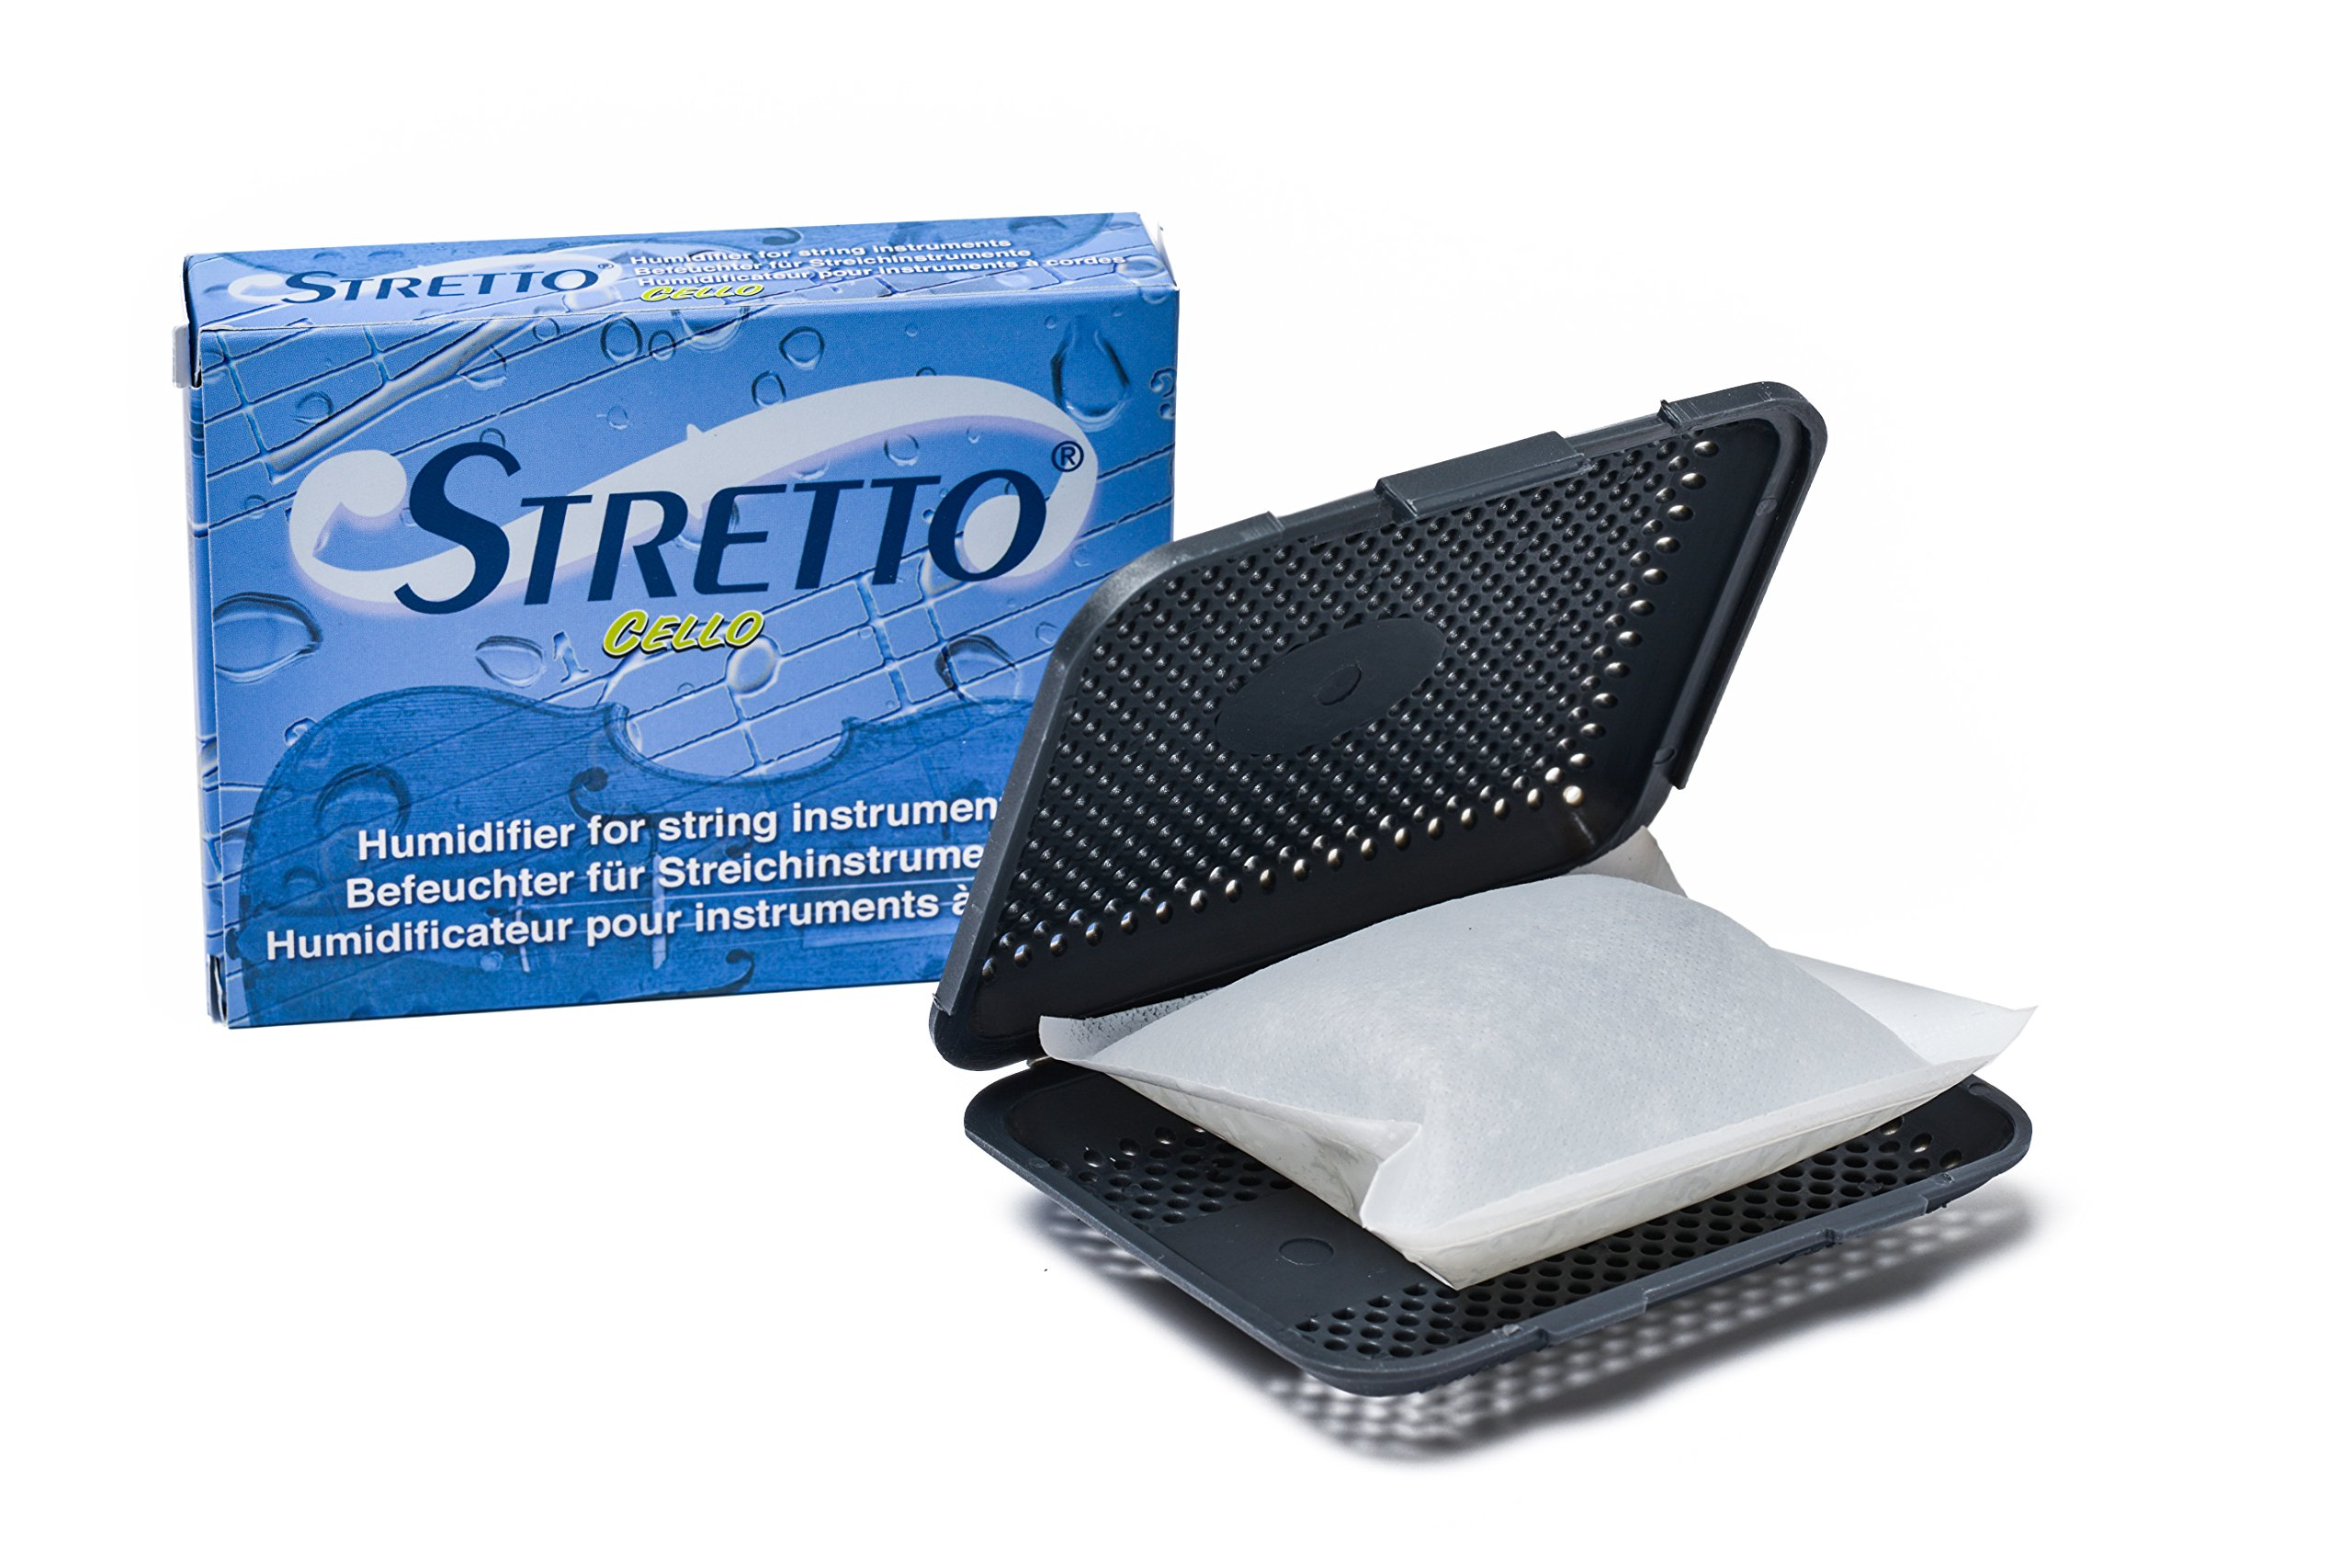 STRETTO STR-1030 Humidifier for Cello & large instruments case & 2 humid bags